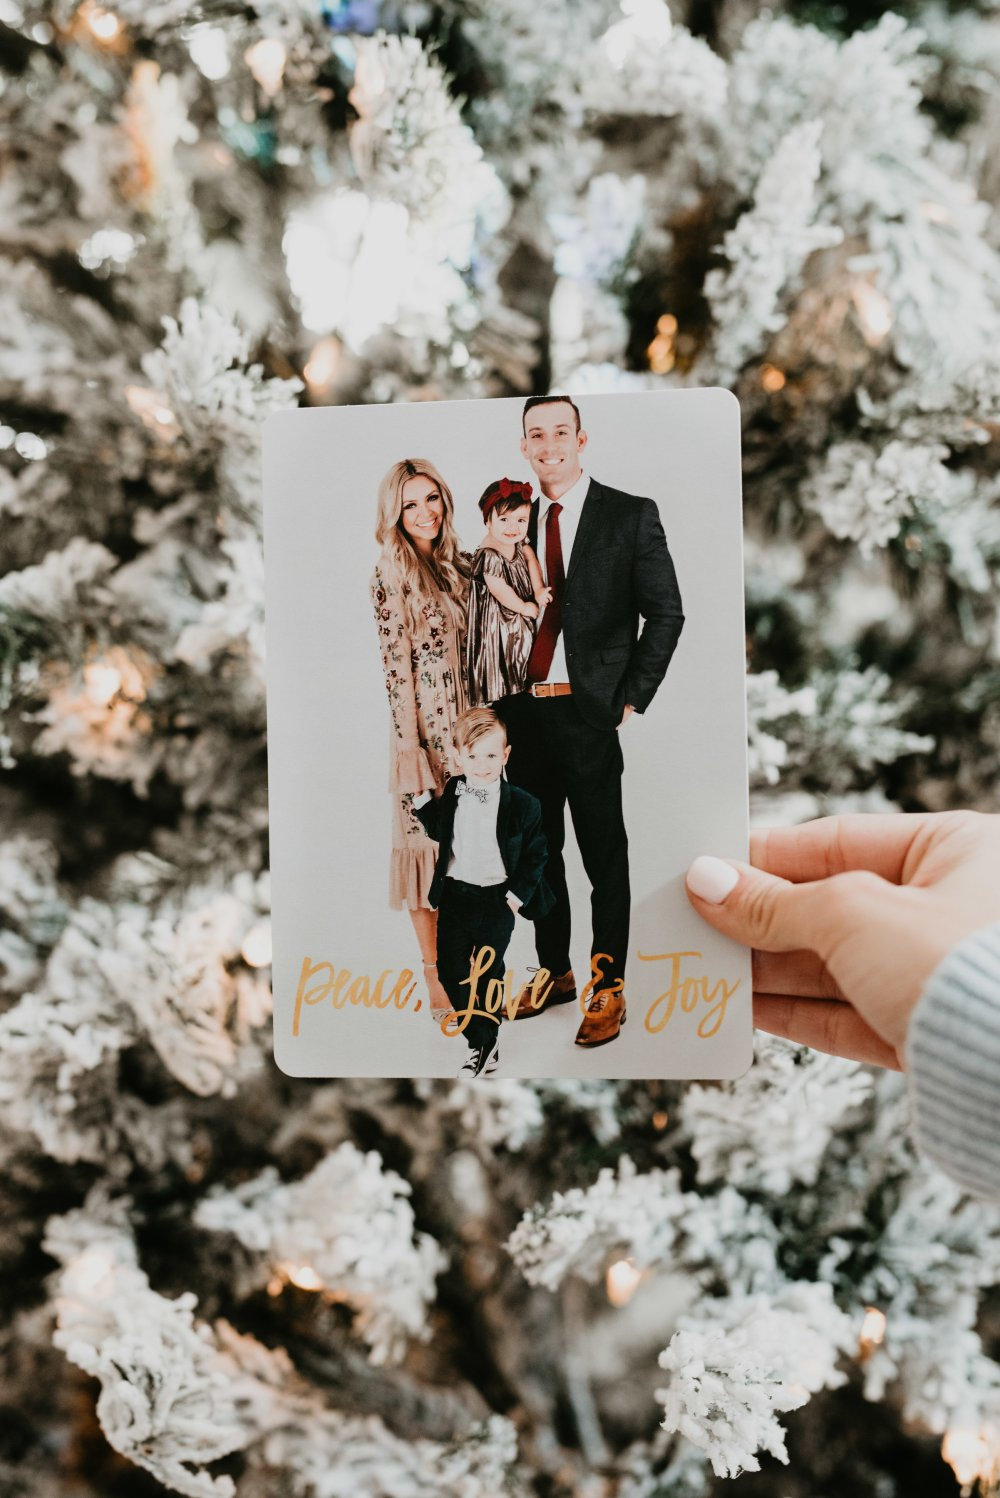 We ordered our family Holiday/Christmas cards through Walmart this year and I am in love! They are chic and perfect! I can't wait for our family and friends to receive them! #trulydestiny #christmascards #walmartchristmas